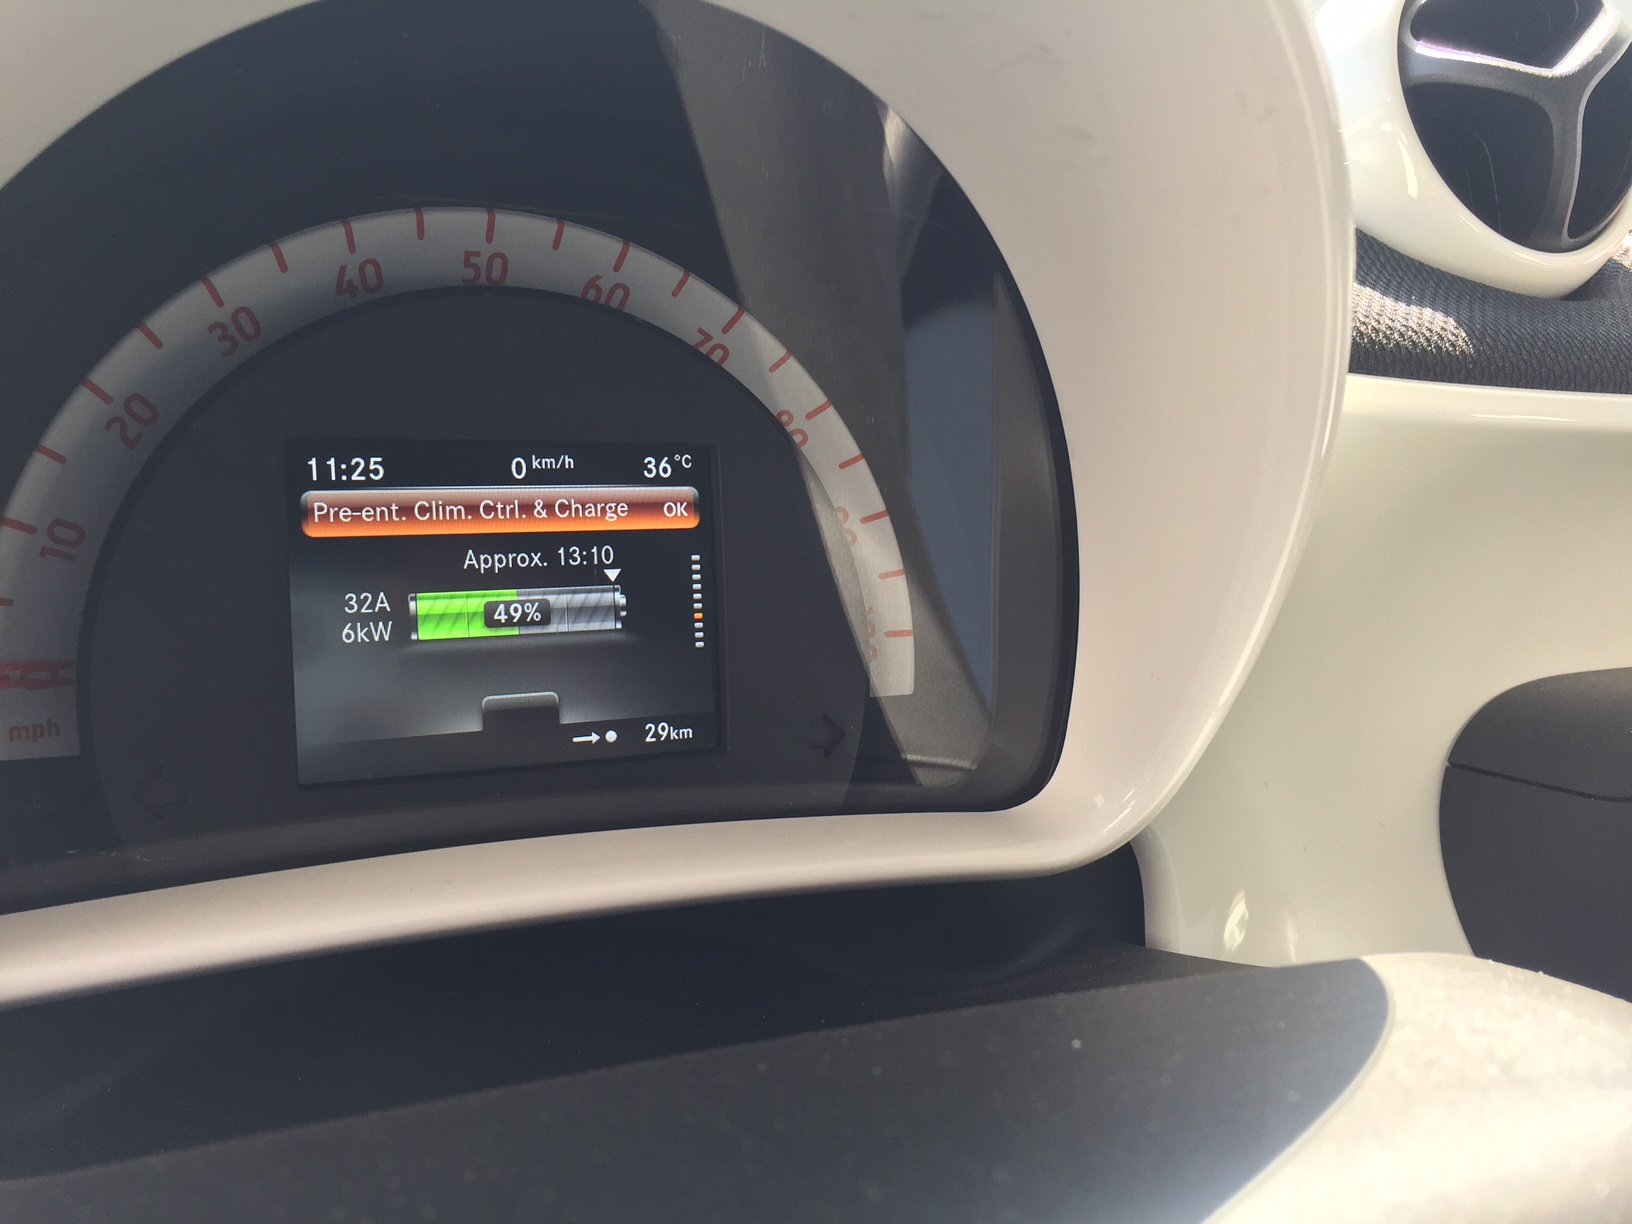 Demonstration of ISO/IEC 15118 on a Daimler Smart Electric Drive vehicle